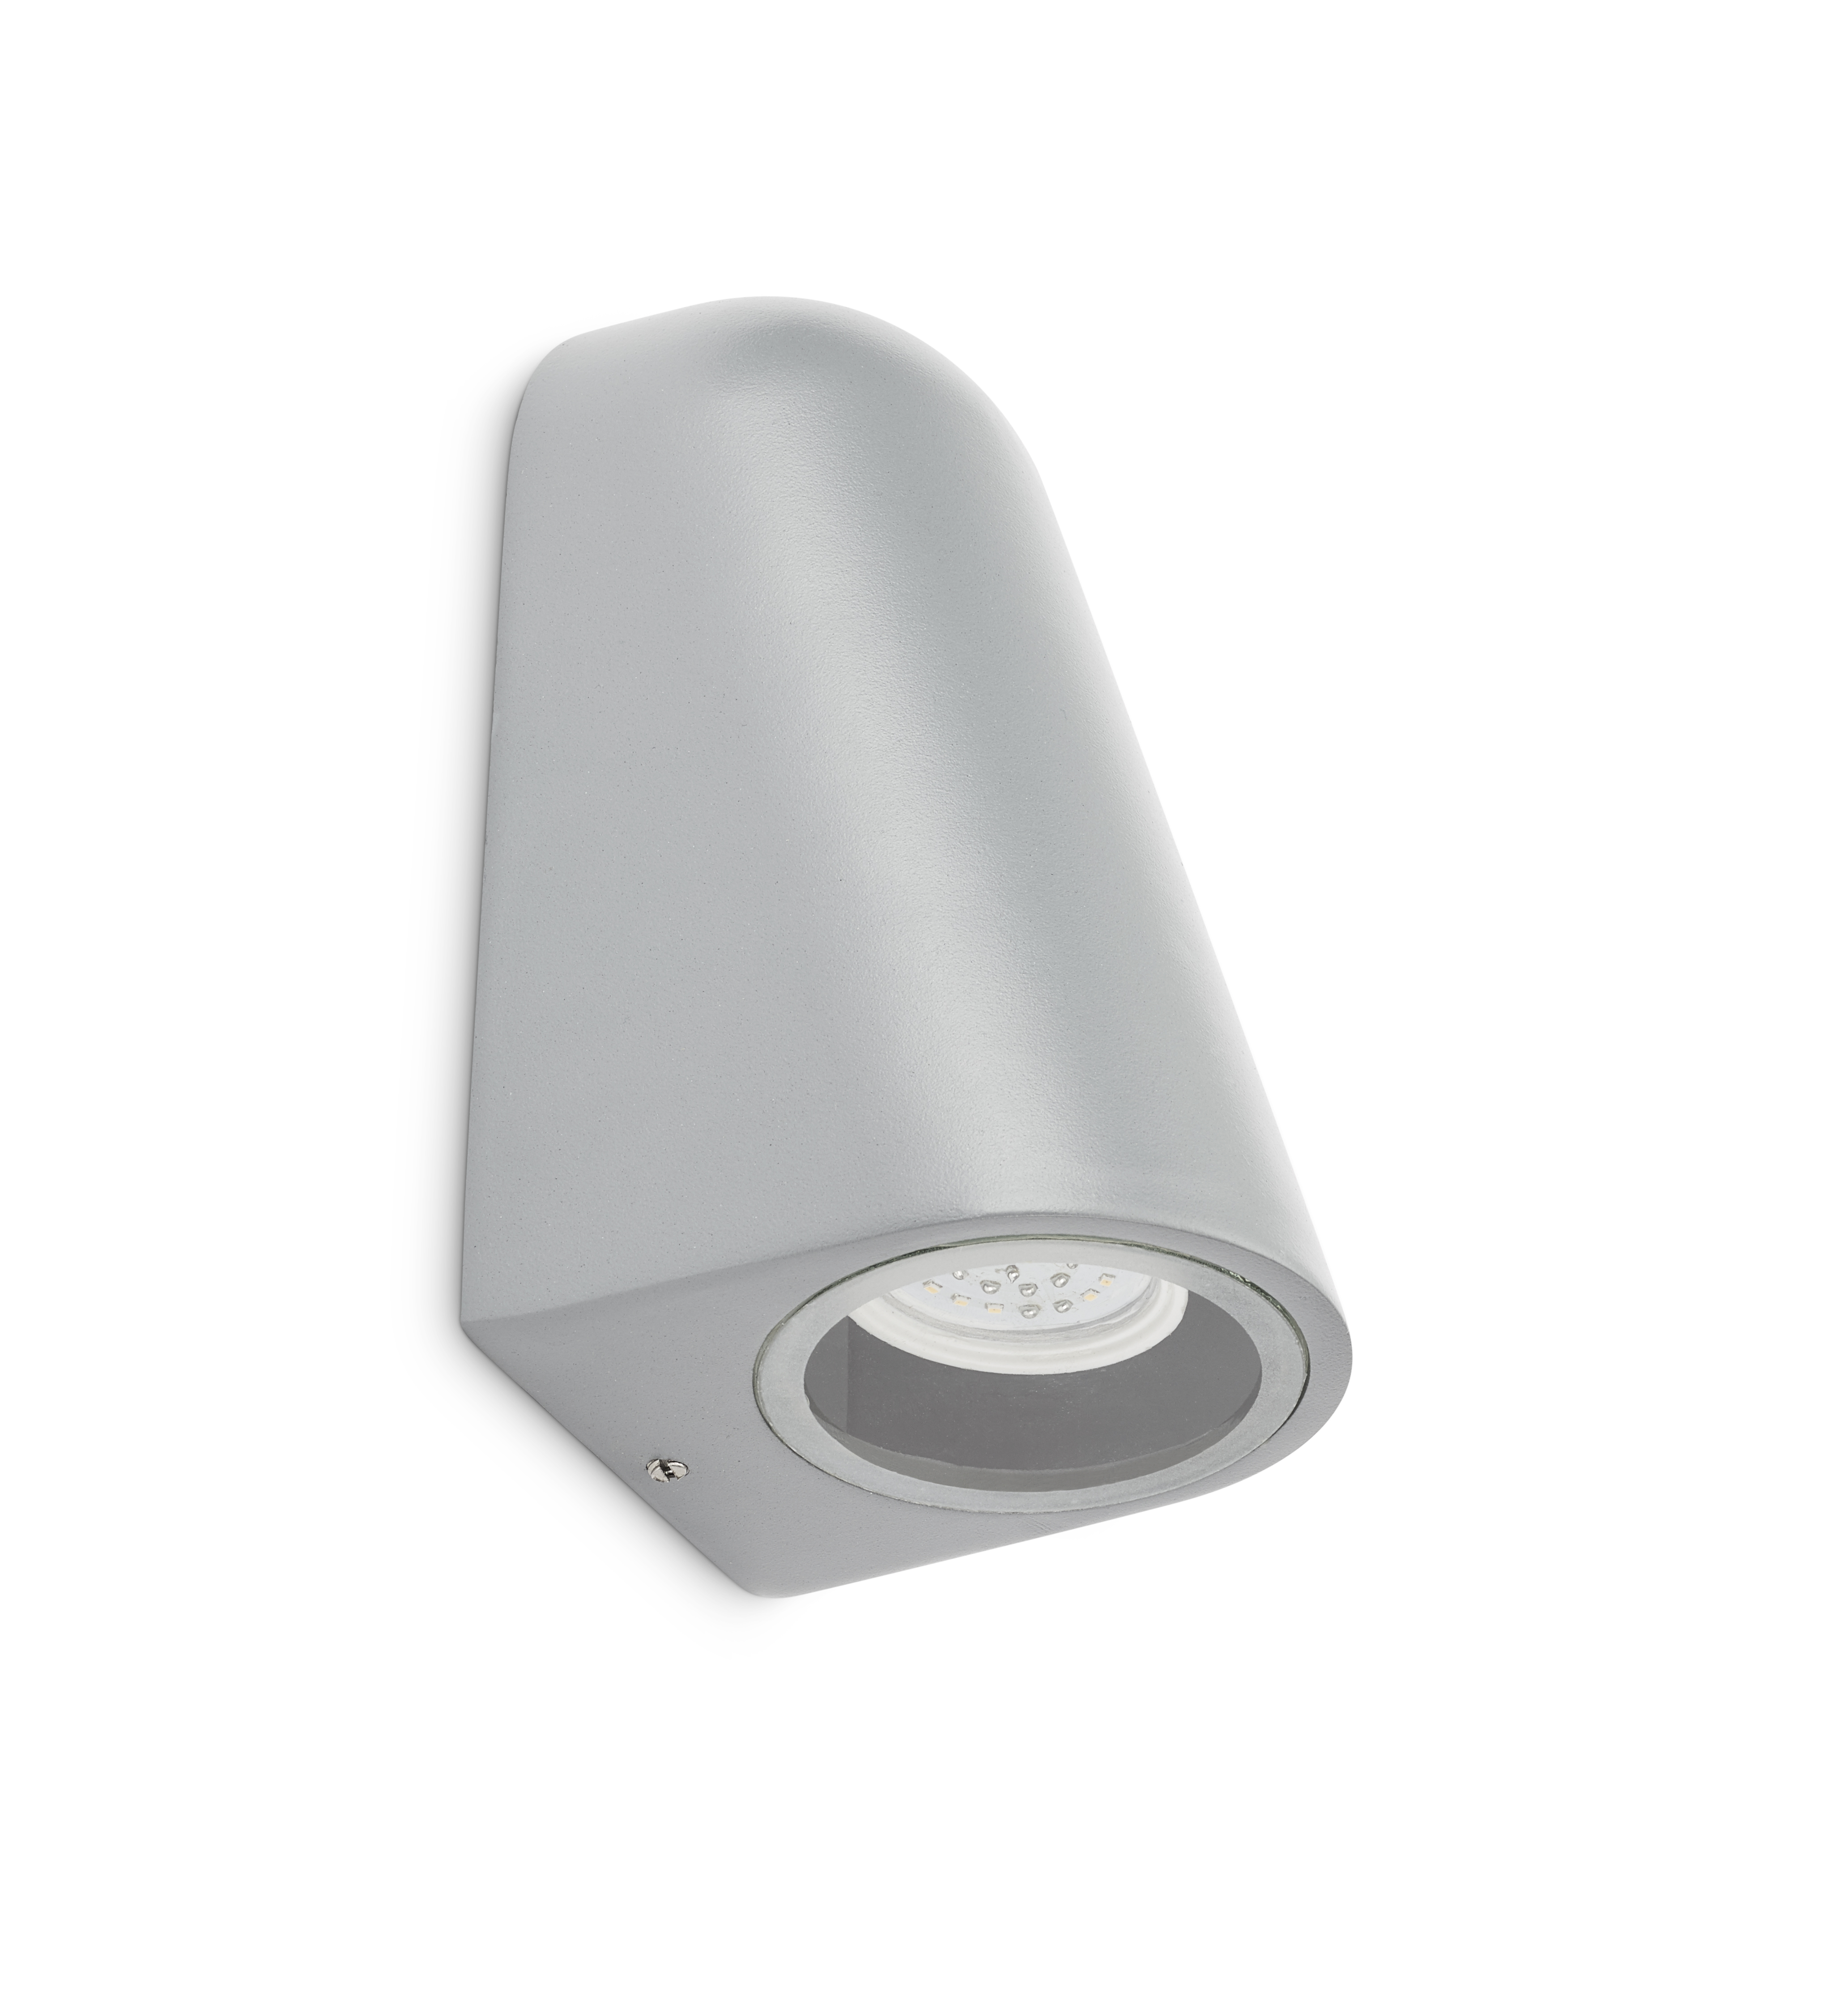 Wall light LED GU10 4W alu